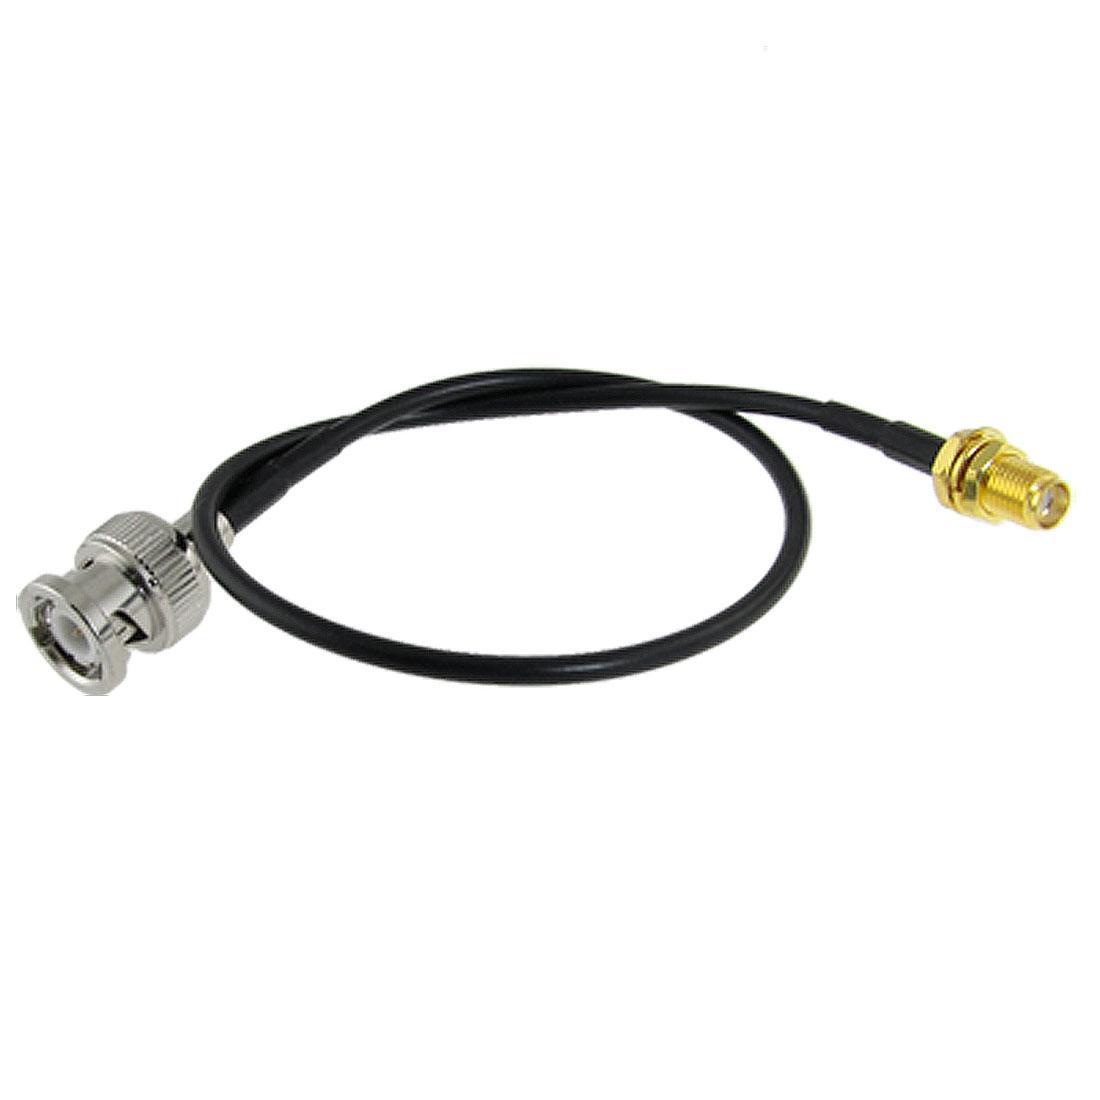 12 8 Inch Rf Pigtail Cable Sma Female To Bnc Male Adapter Connector Cables In Networking Cables